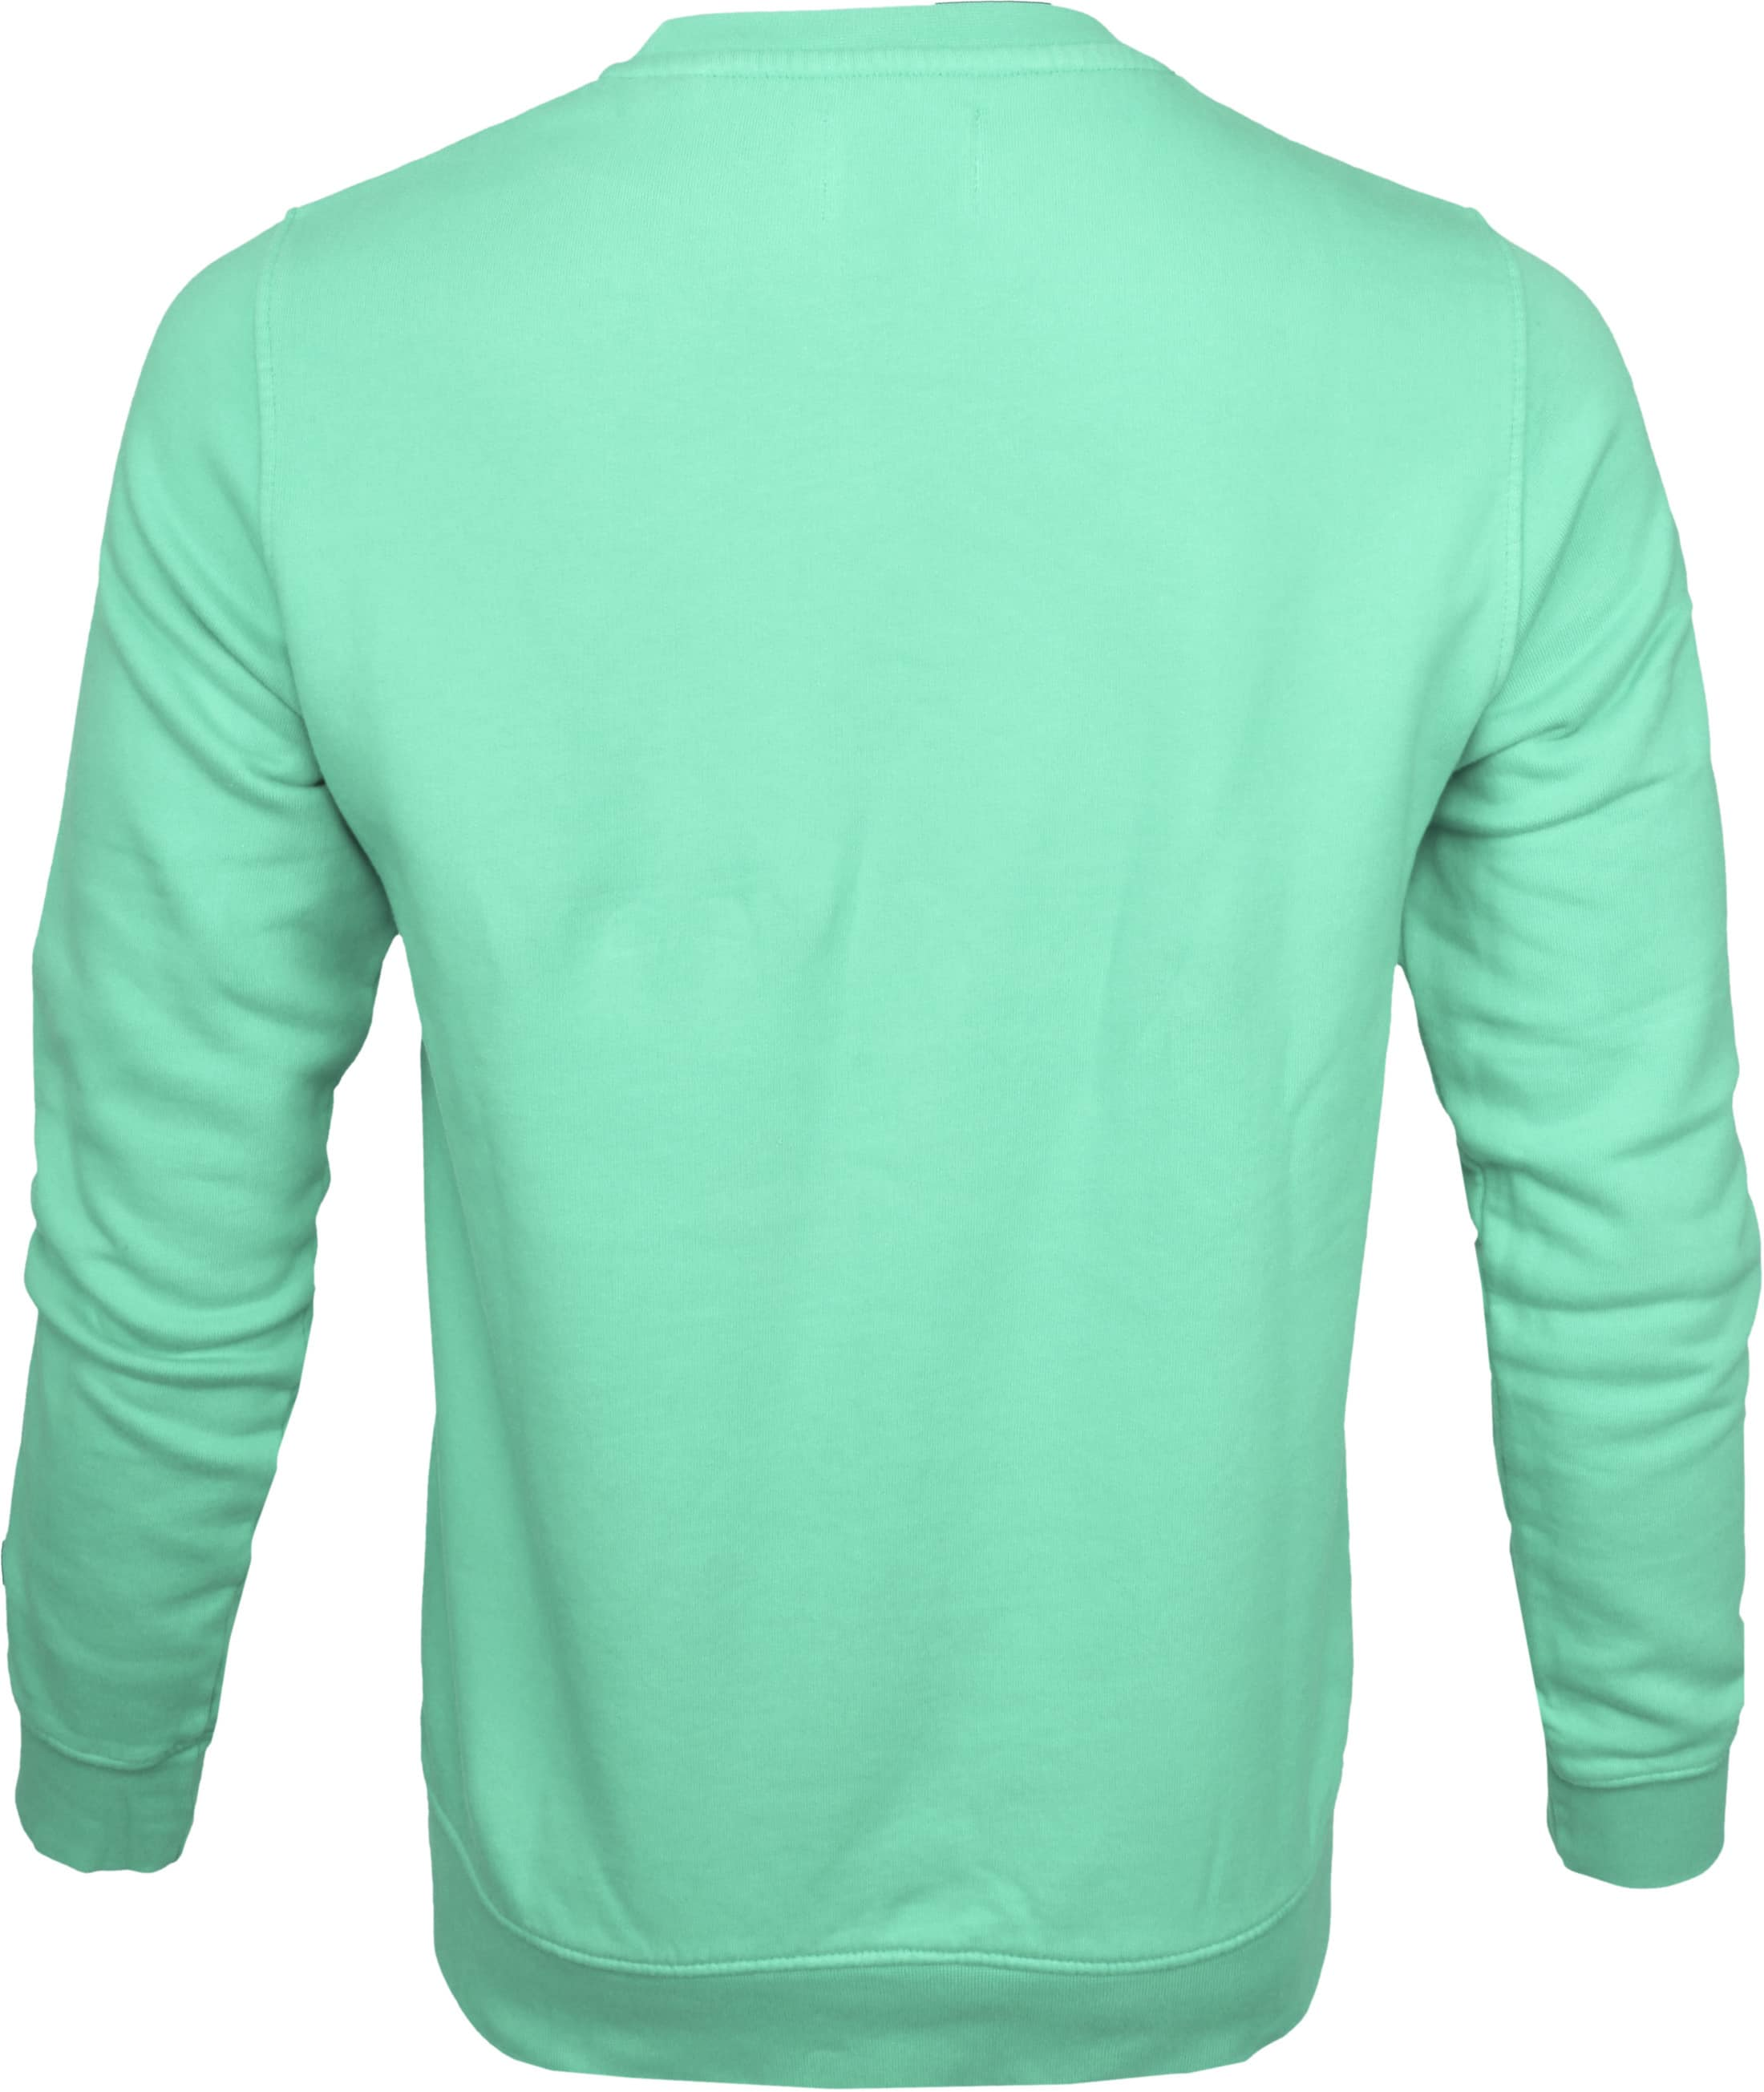 Colorful Standard Sweater Faded Mint foto 2